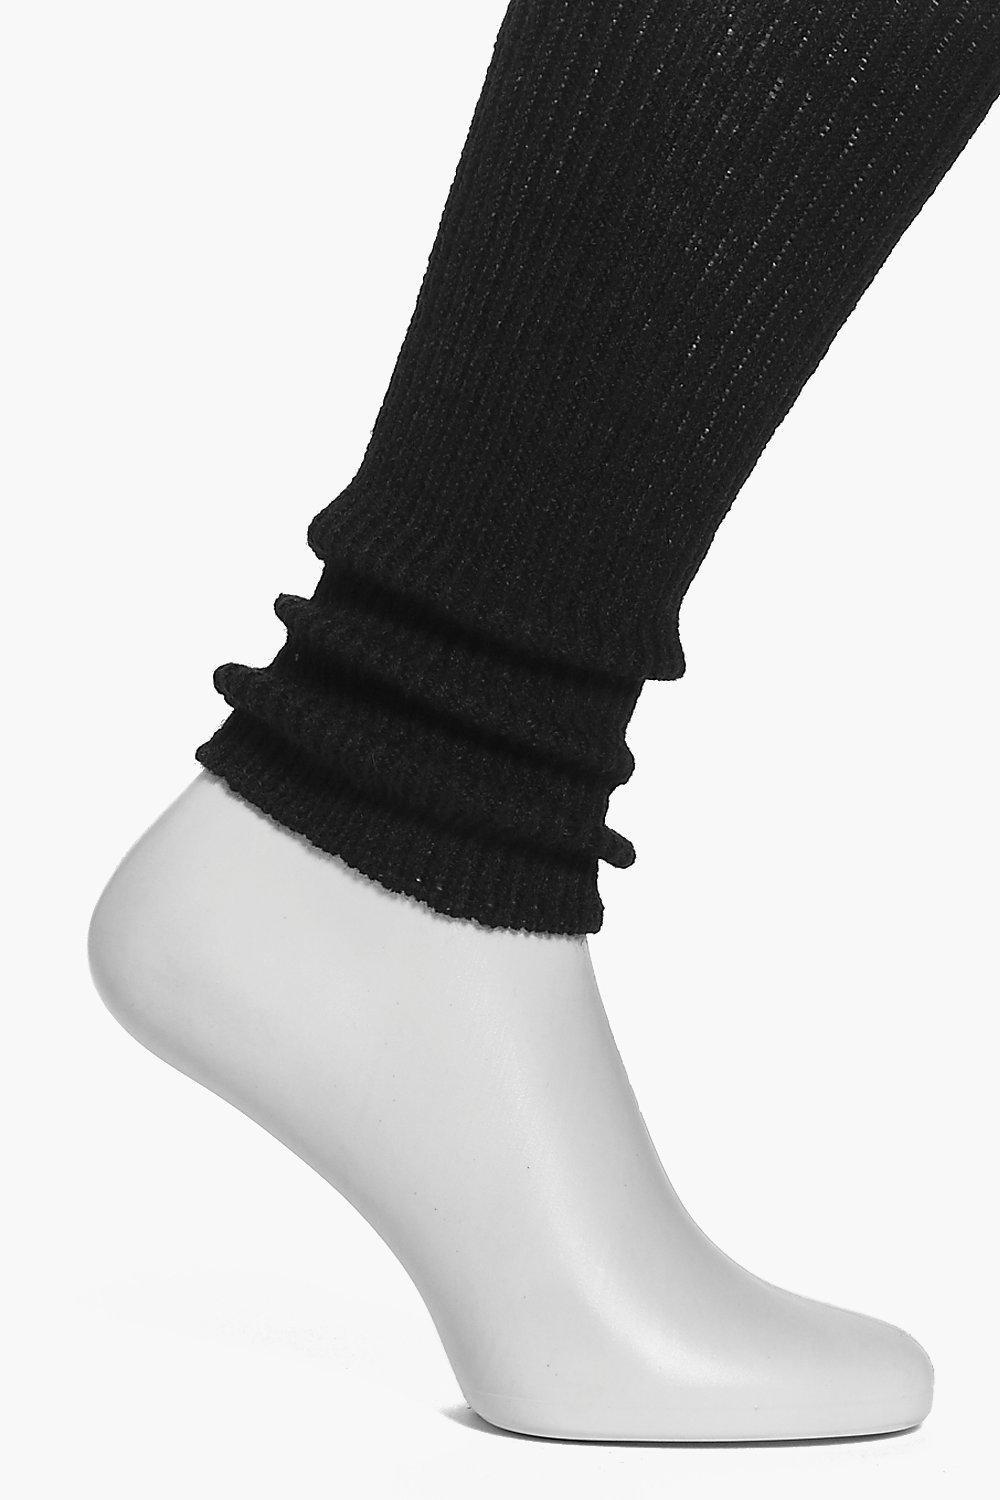 Lizzie Short Knitted Ballet Leg Warmers